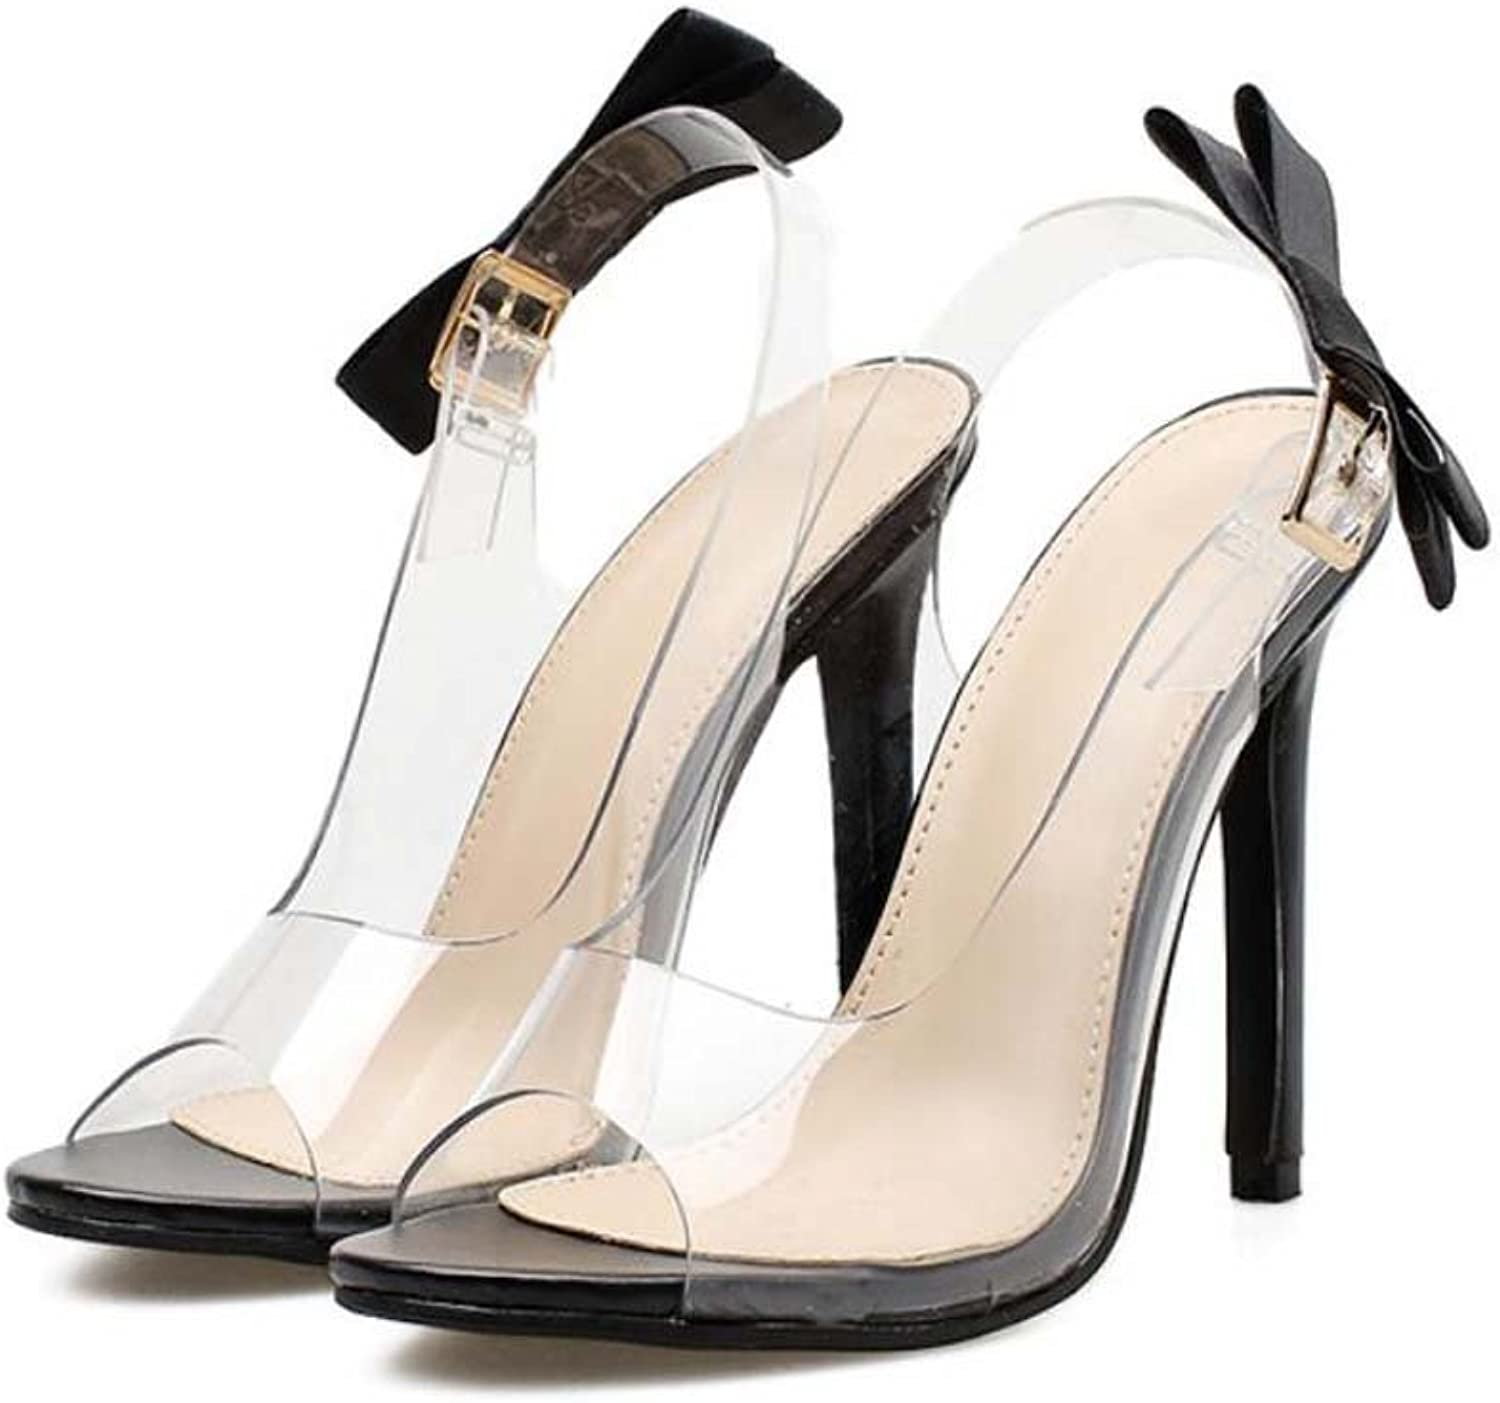 Pump 11cm Stiletto Peep Toe Bowknot Transparent Sandals Dress shoes Crystal shoes Women Slingbacks Pure color OL Casual Court shoes Party shoes EU Size 34-40